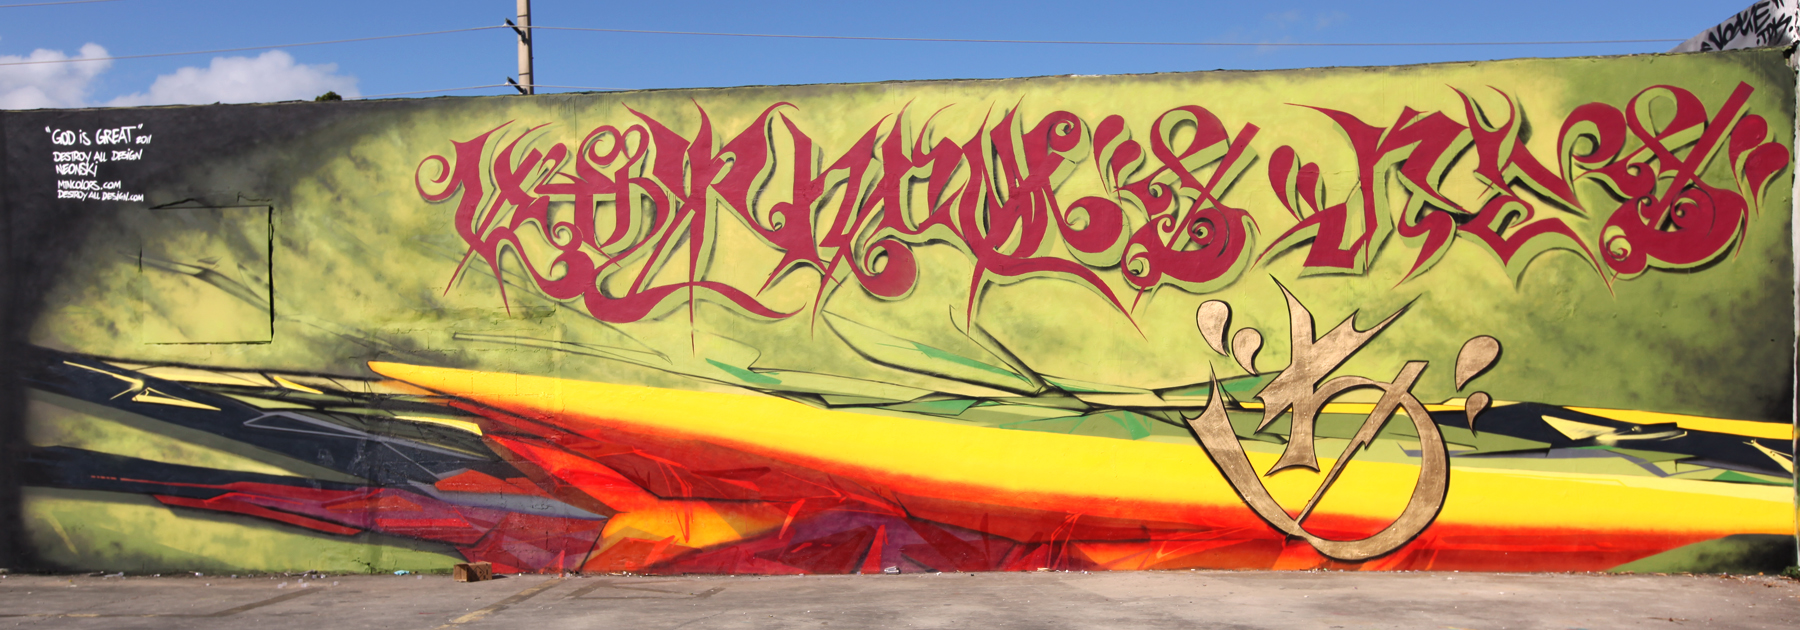 Update Video MTN Colors Miami Art Basel & 2011 Picture Update ...